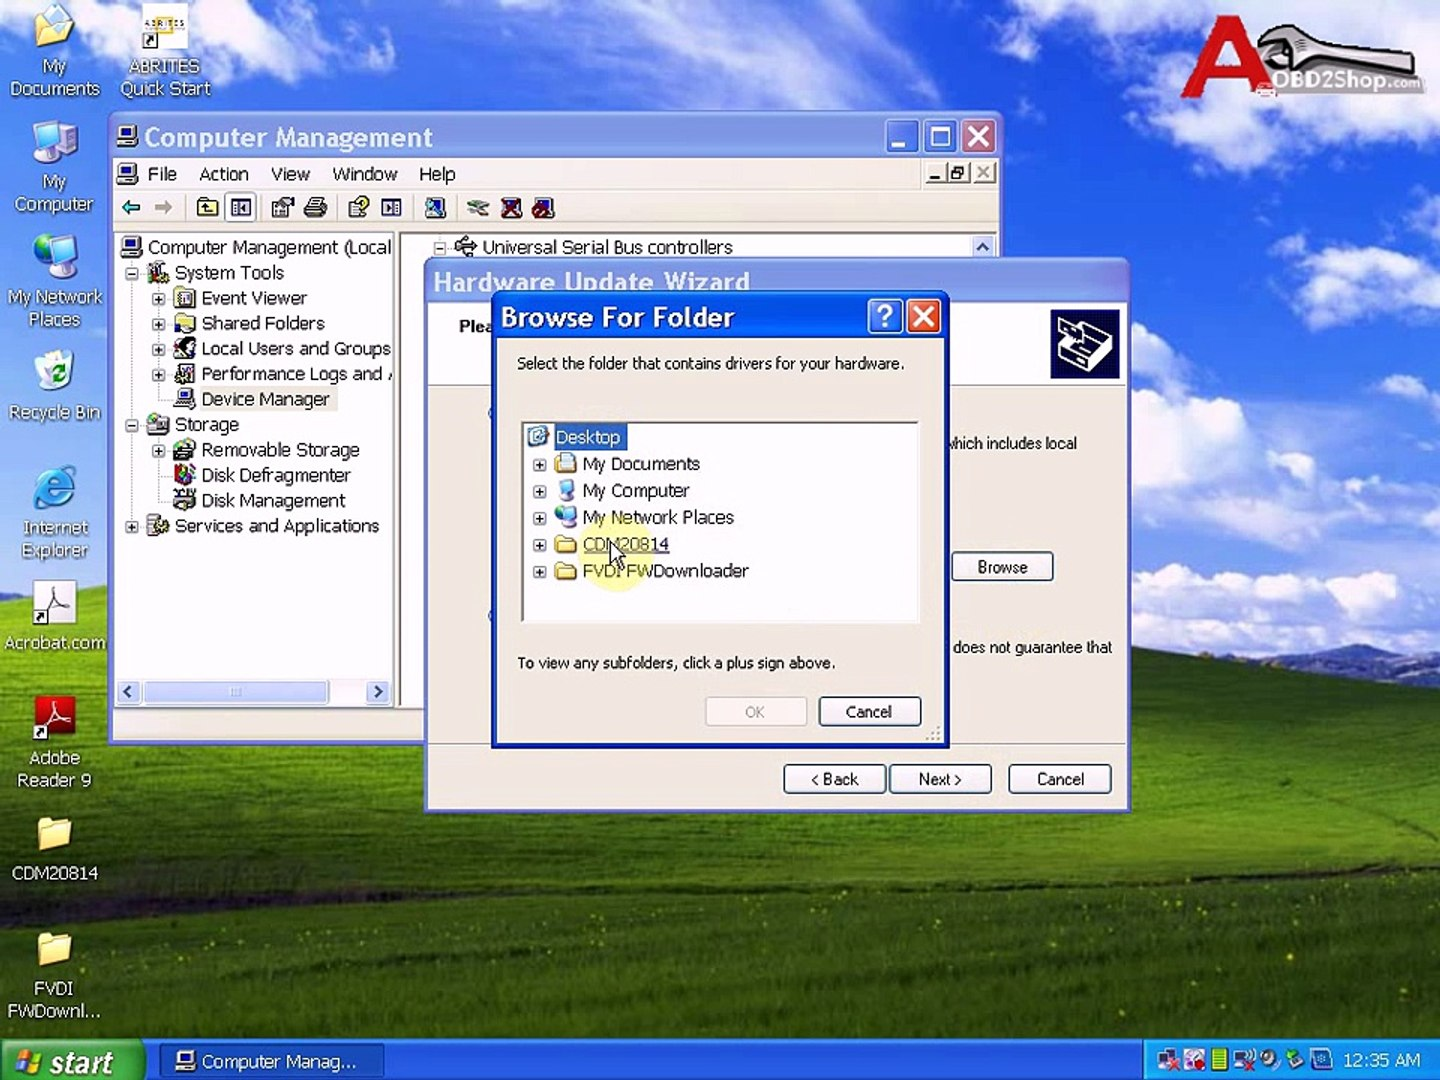 How to upgrade FVDI driver v2 10 to 2 8 14